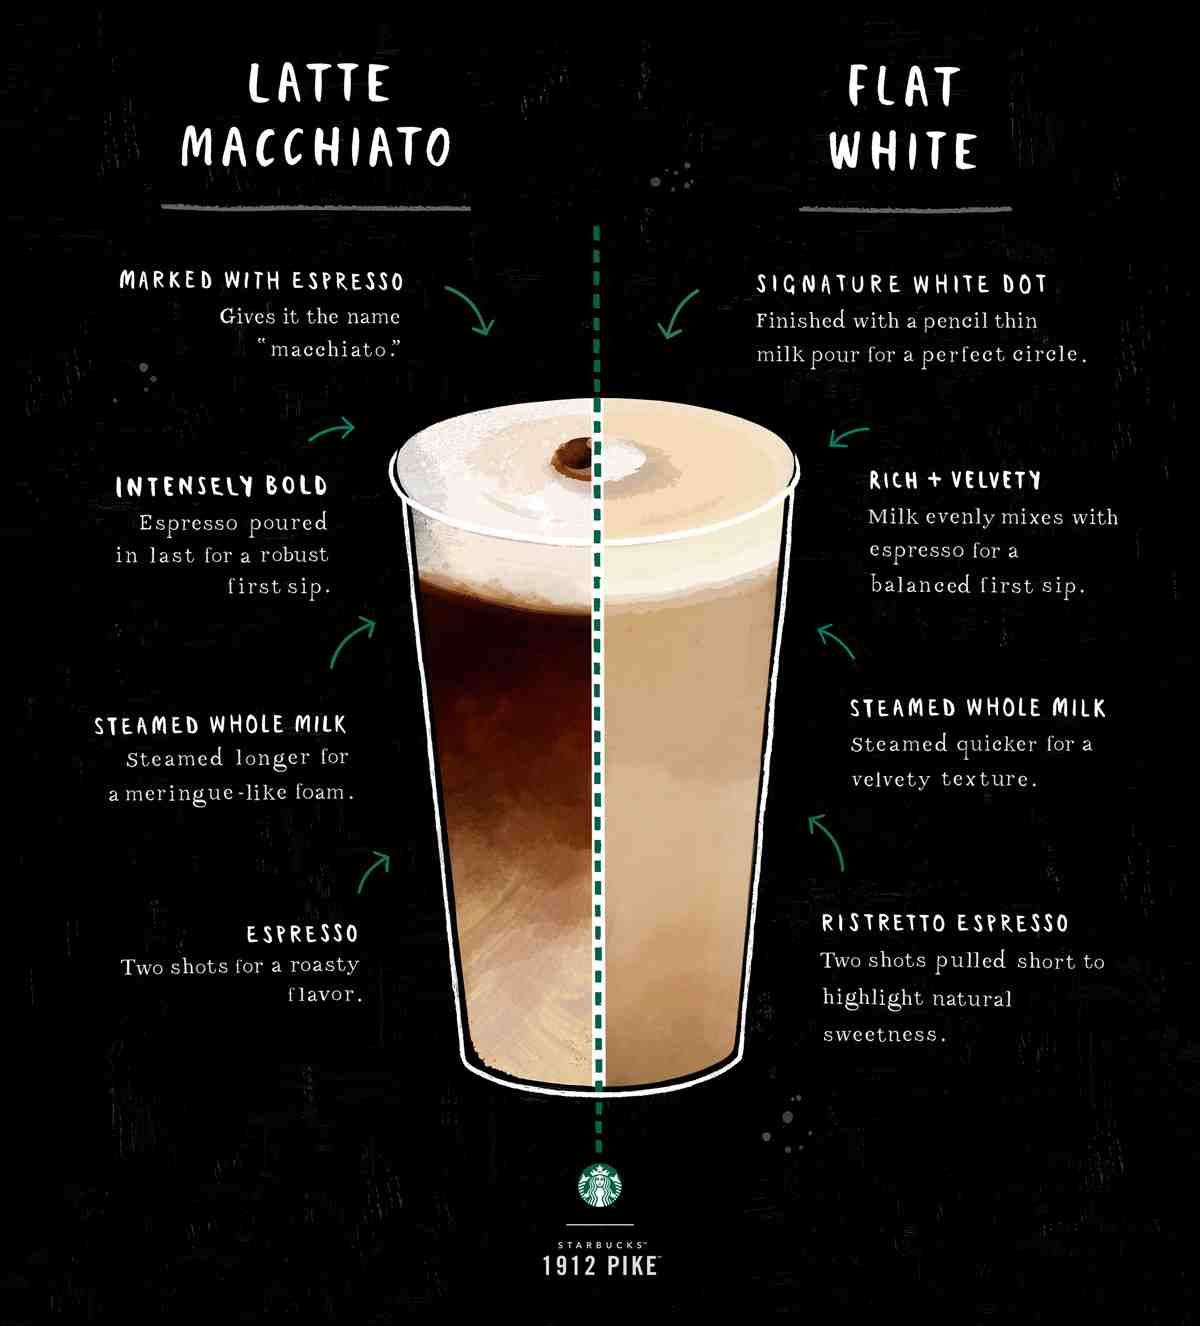 latte macchiato vs the flat white here s the breakdown and the differences [ 1200 x 1326 Pixel ]